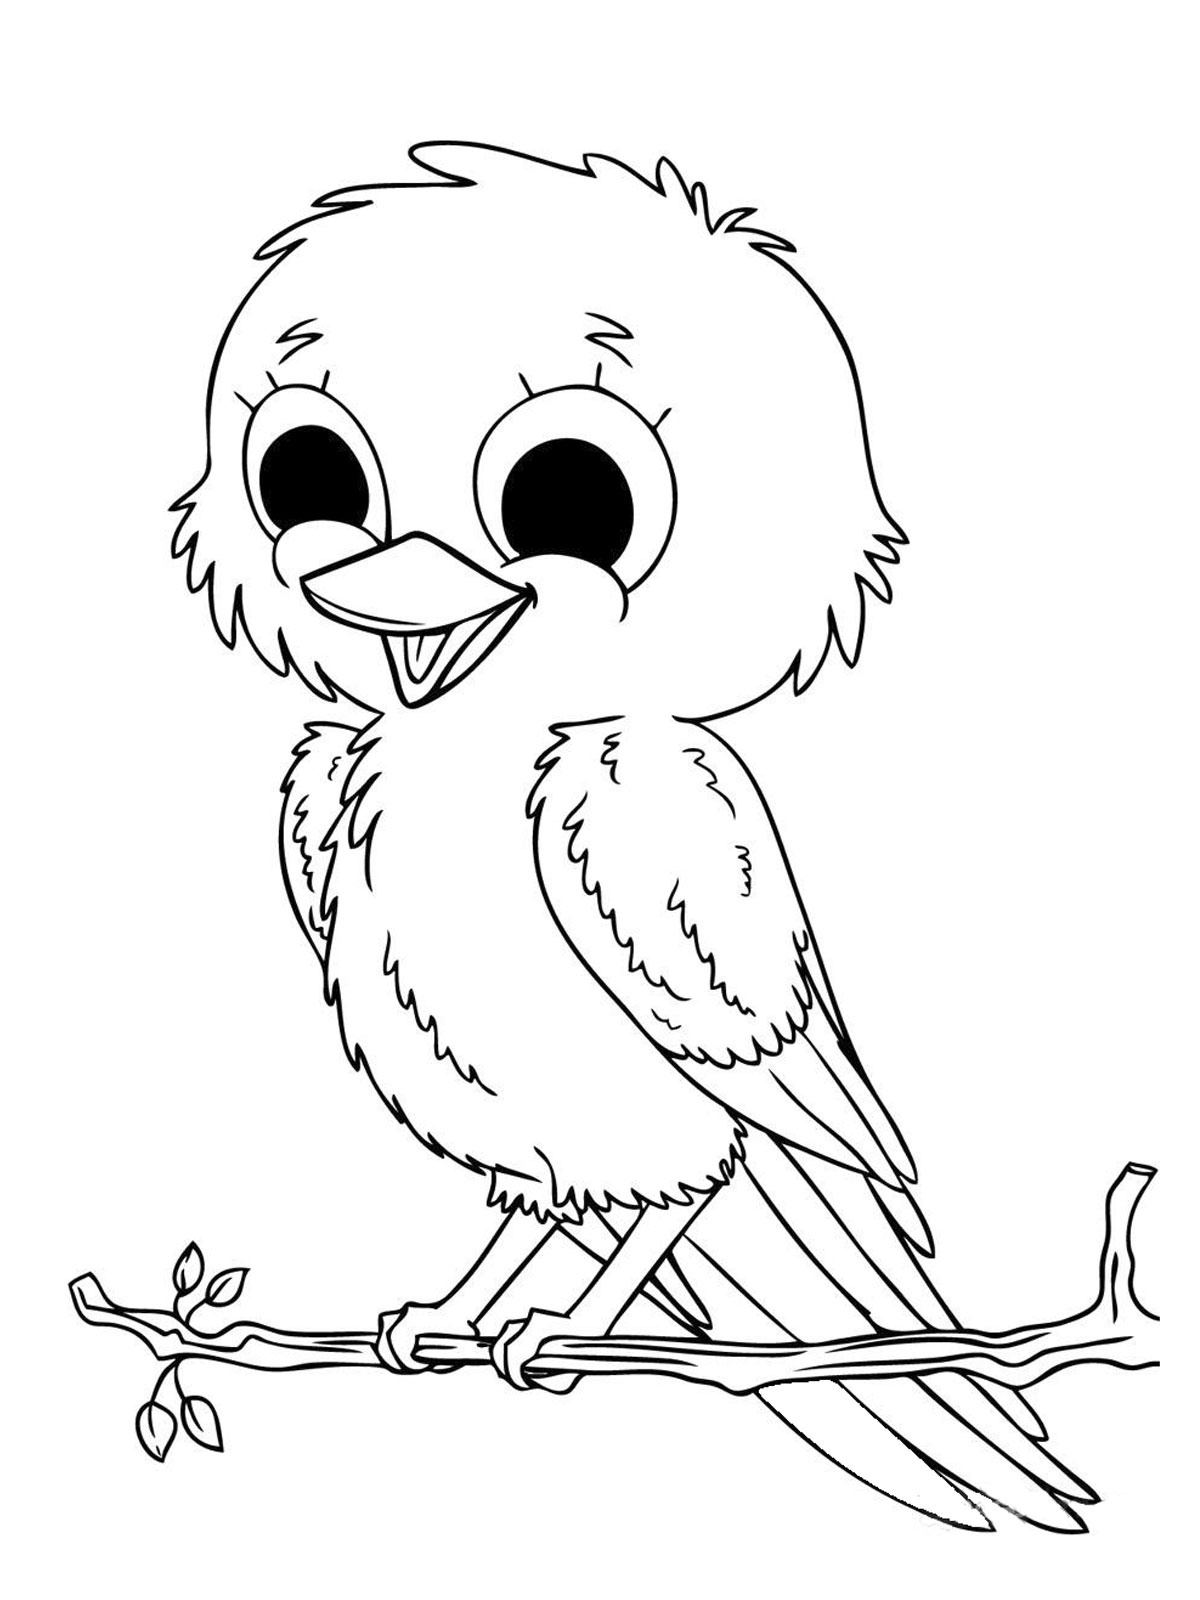 50 coloring pages for teenagers